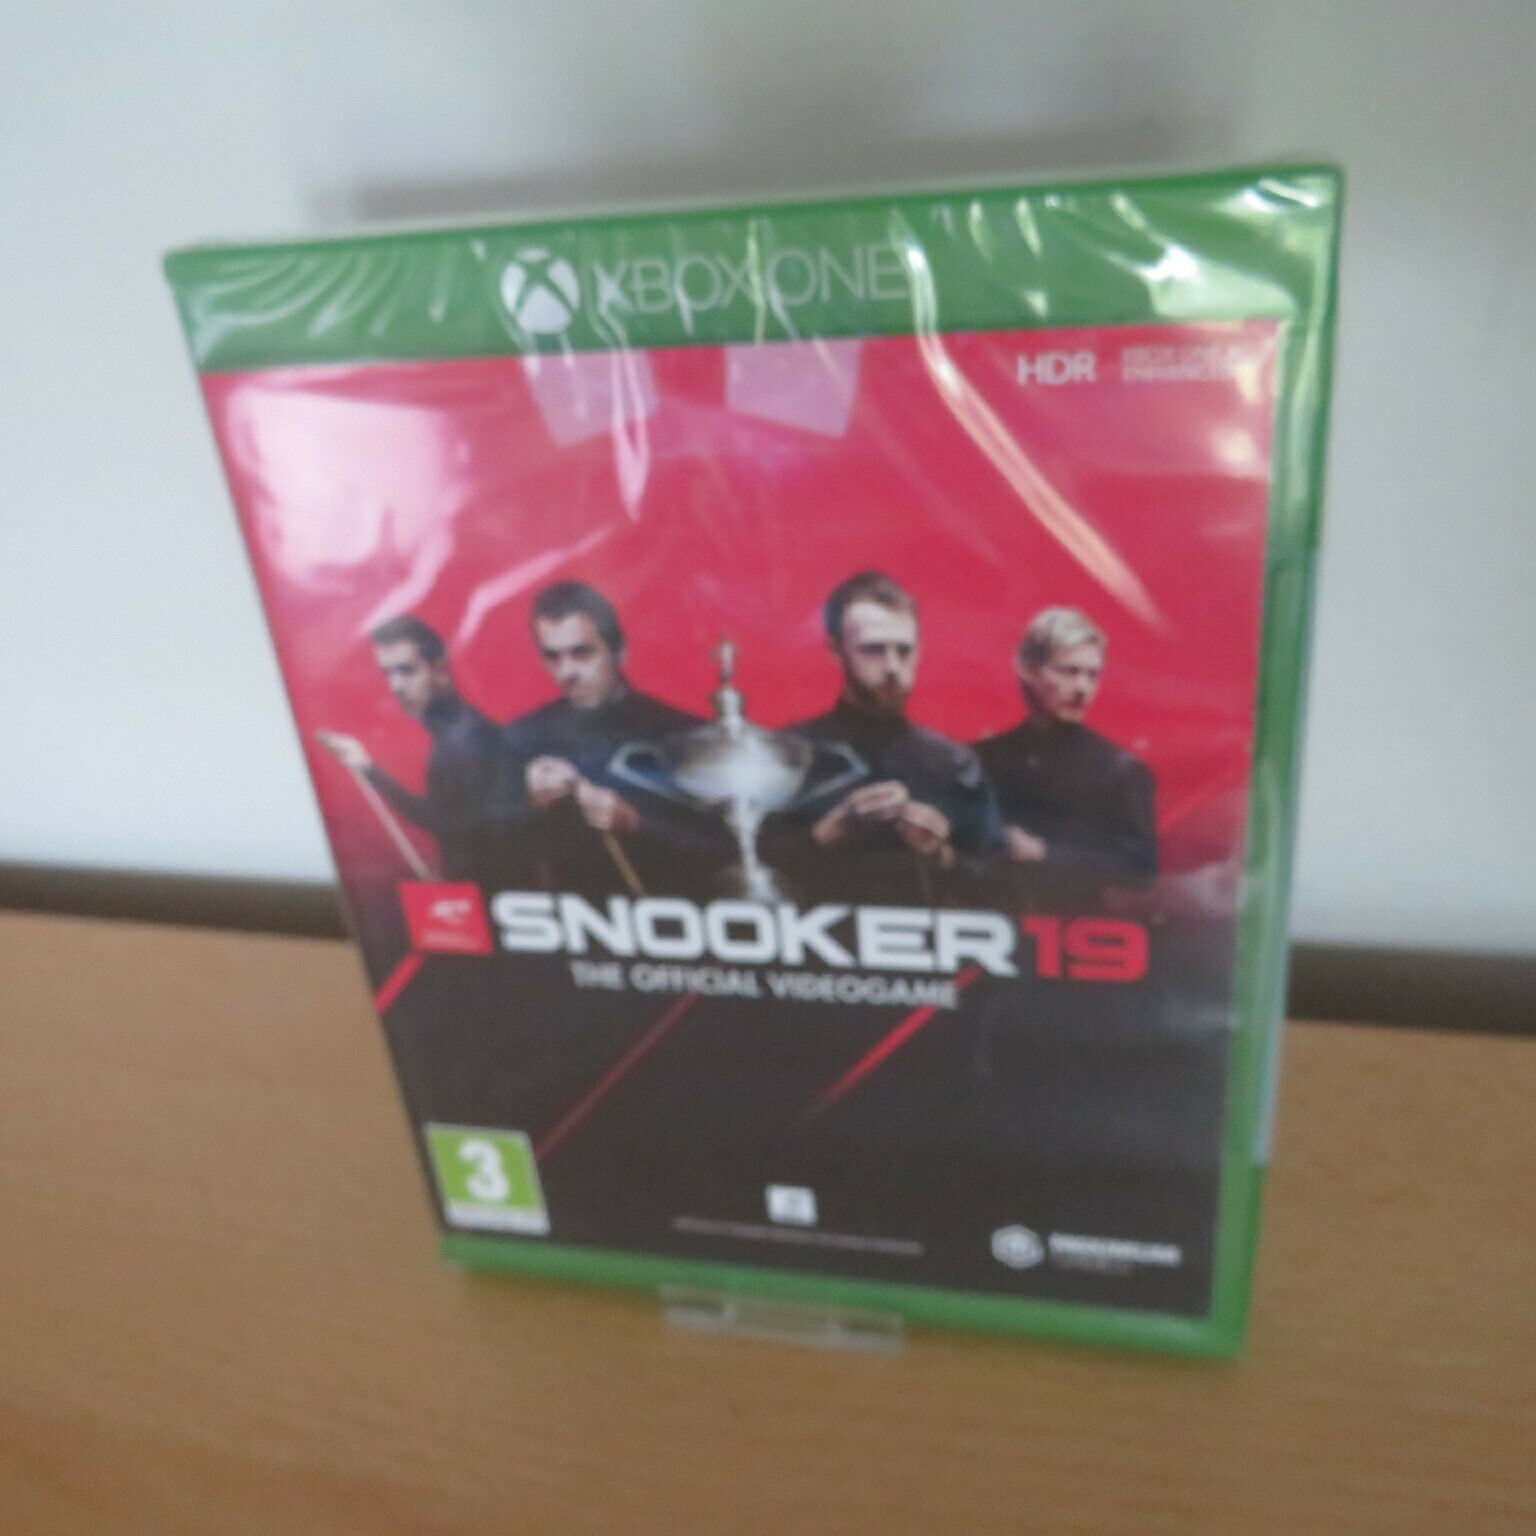 Snooker 19: The Official Video Game (Xbox One) new sealed